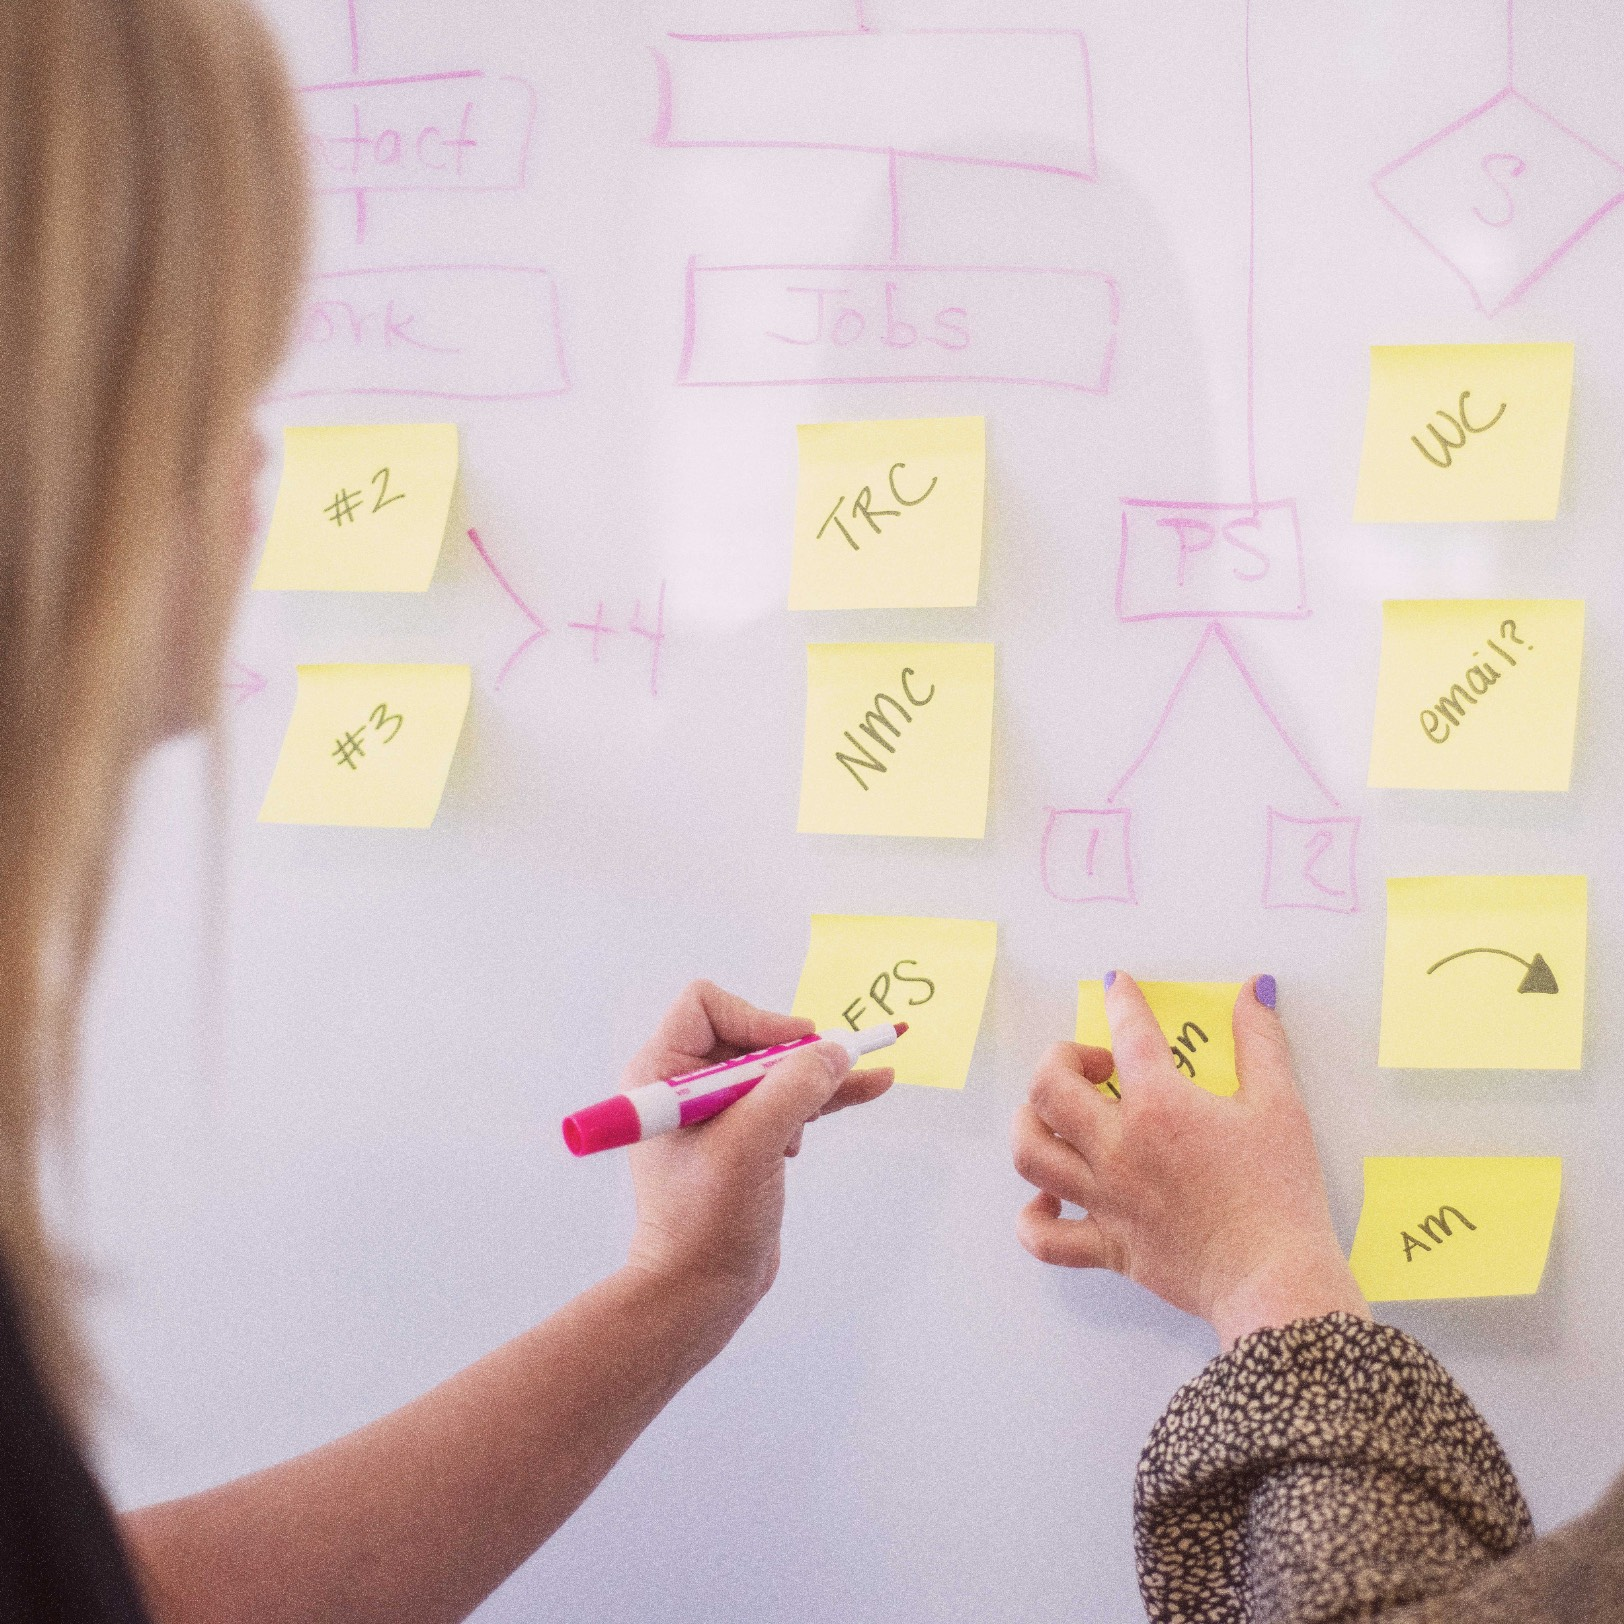 Post-it Notes on Whiteboard